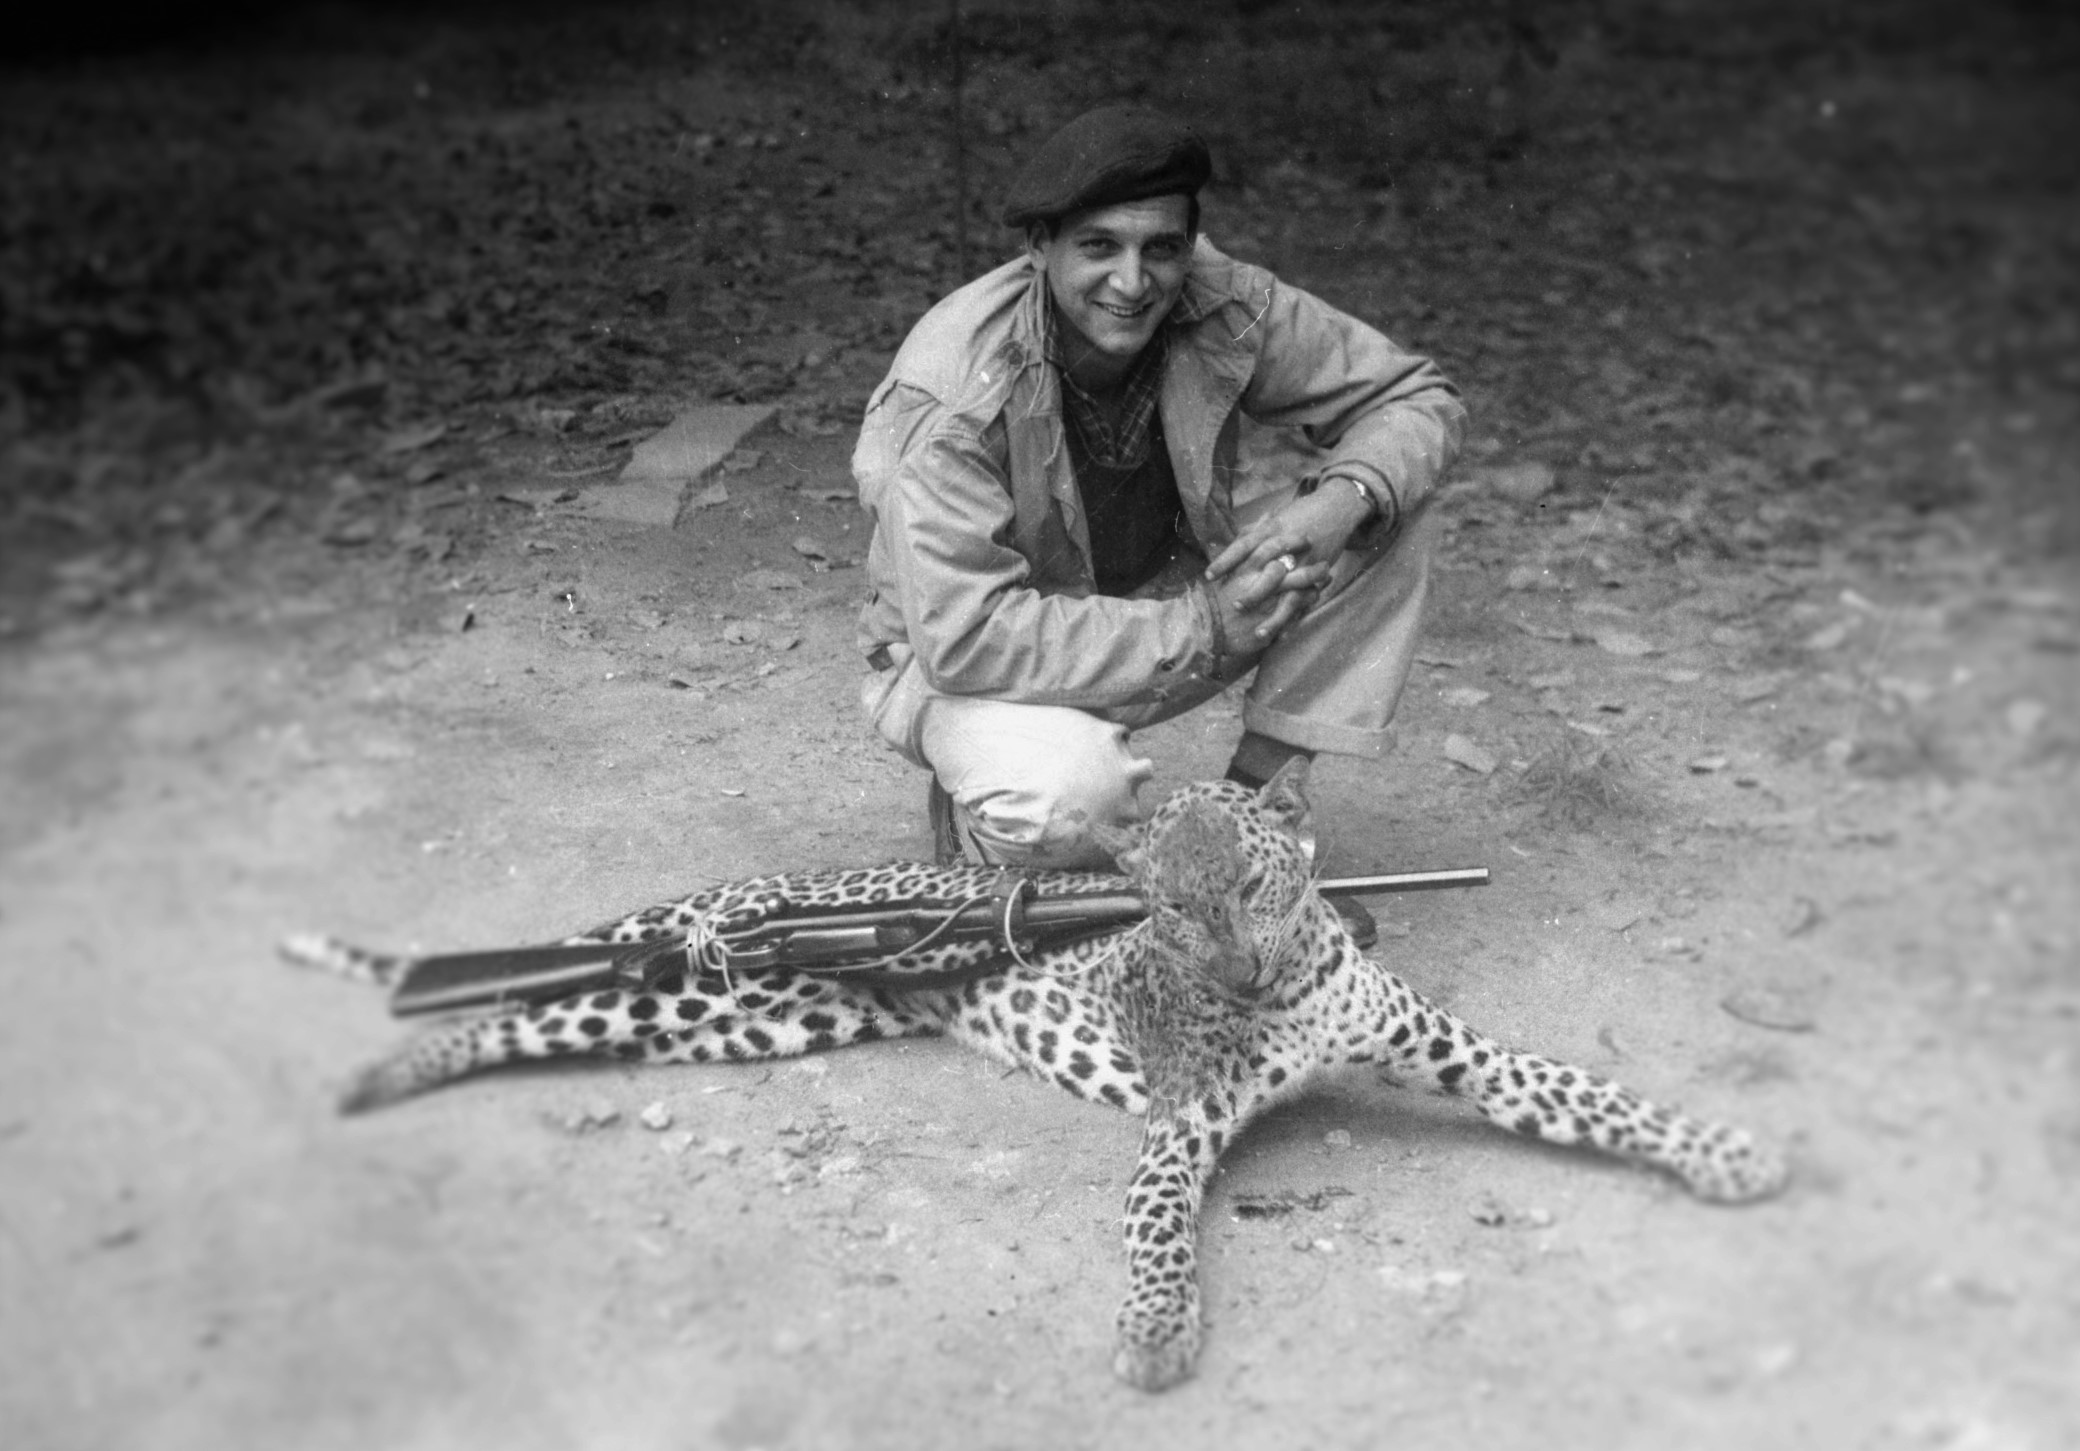 Donald Anderson with panther | Wikimedia Commons (Licensed under CC by 4.0)